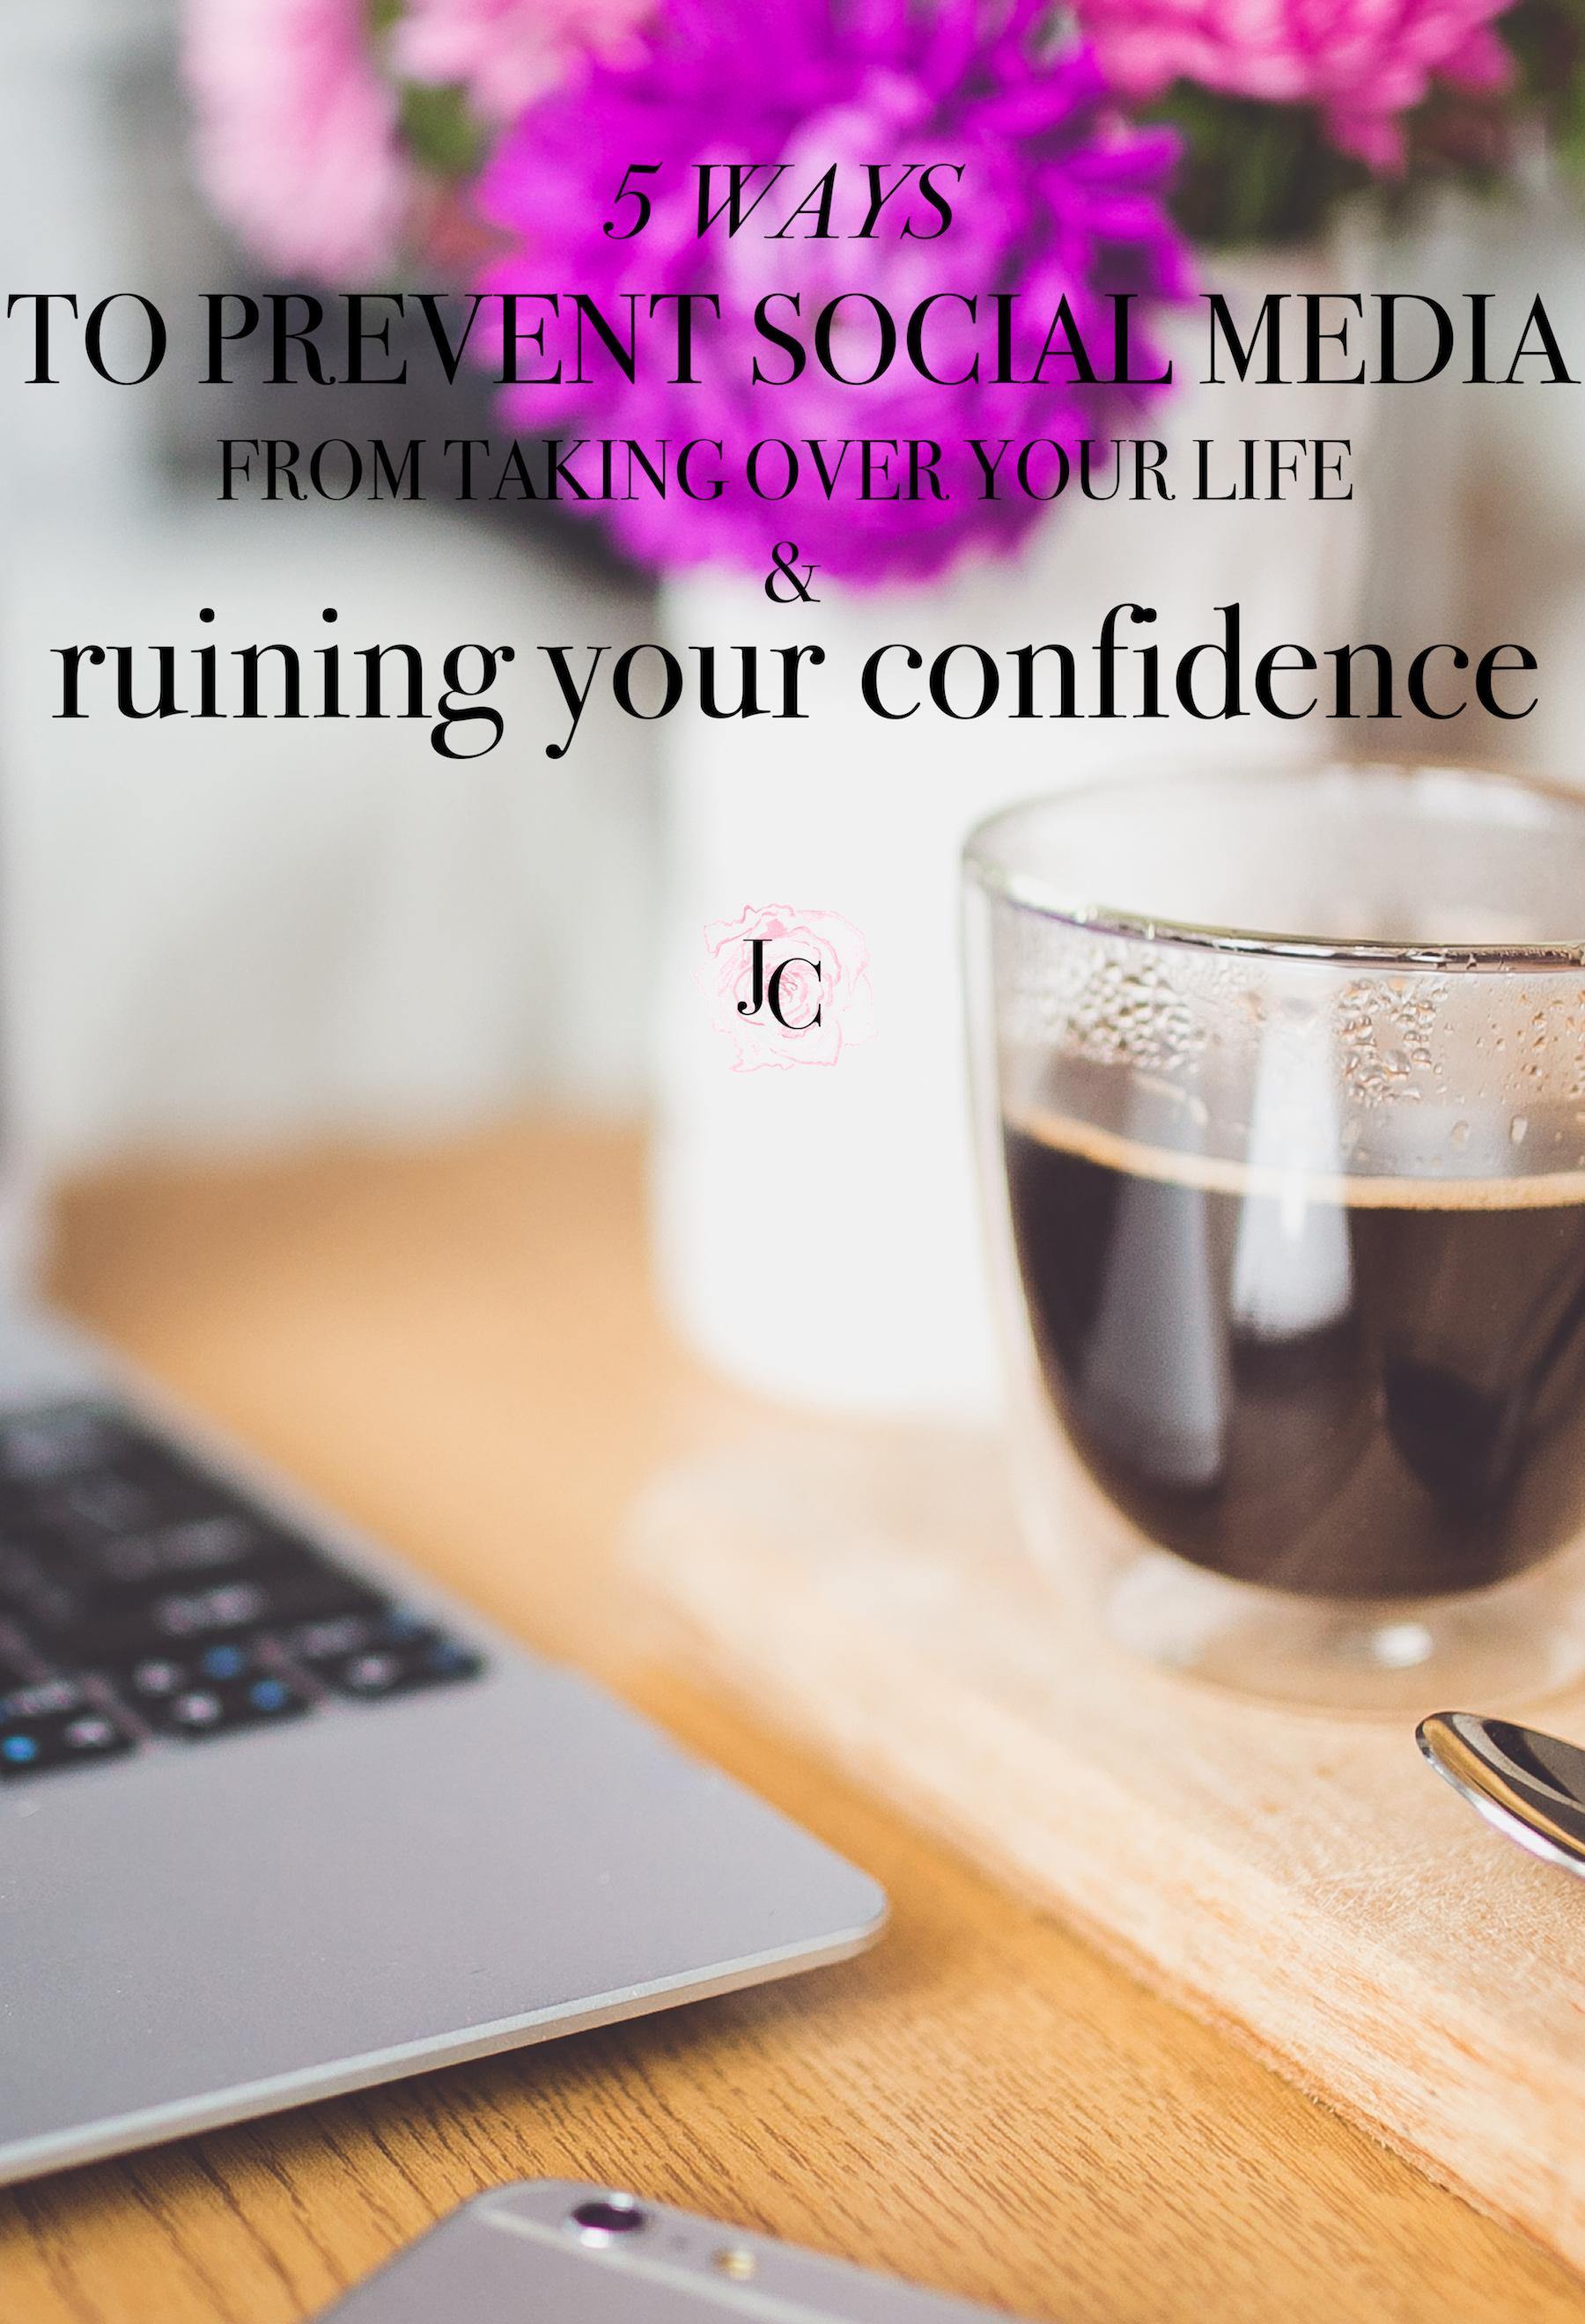 Do you have a habit of overconsuming social media, and feeling lack of confidence afterwards, because of a feed full of perfect bikini bodies and #lifegoals? Here's a survival guide to social media - how to prevent it from taking over your life and confidence. Click to read more!